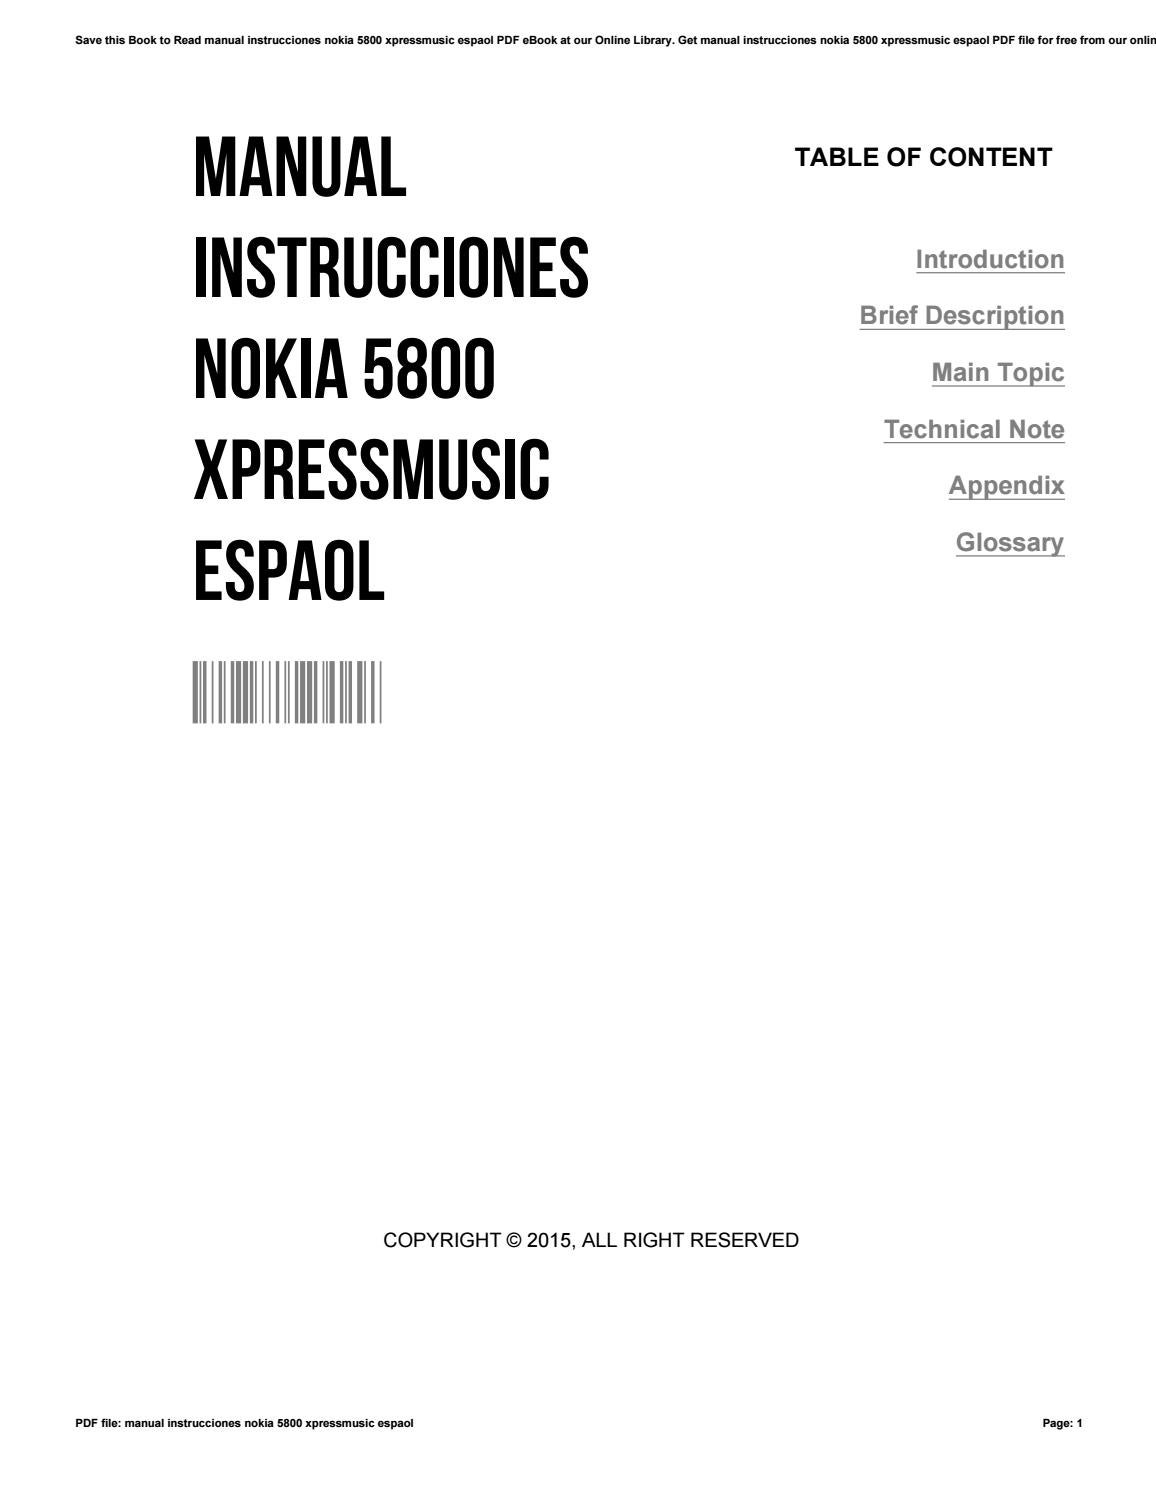 Manual instrucciones nokia 5800 xpressmusic espaol by